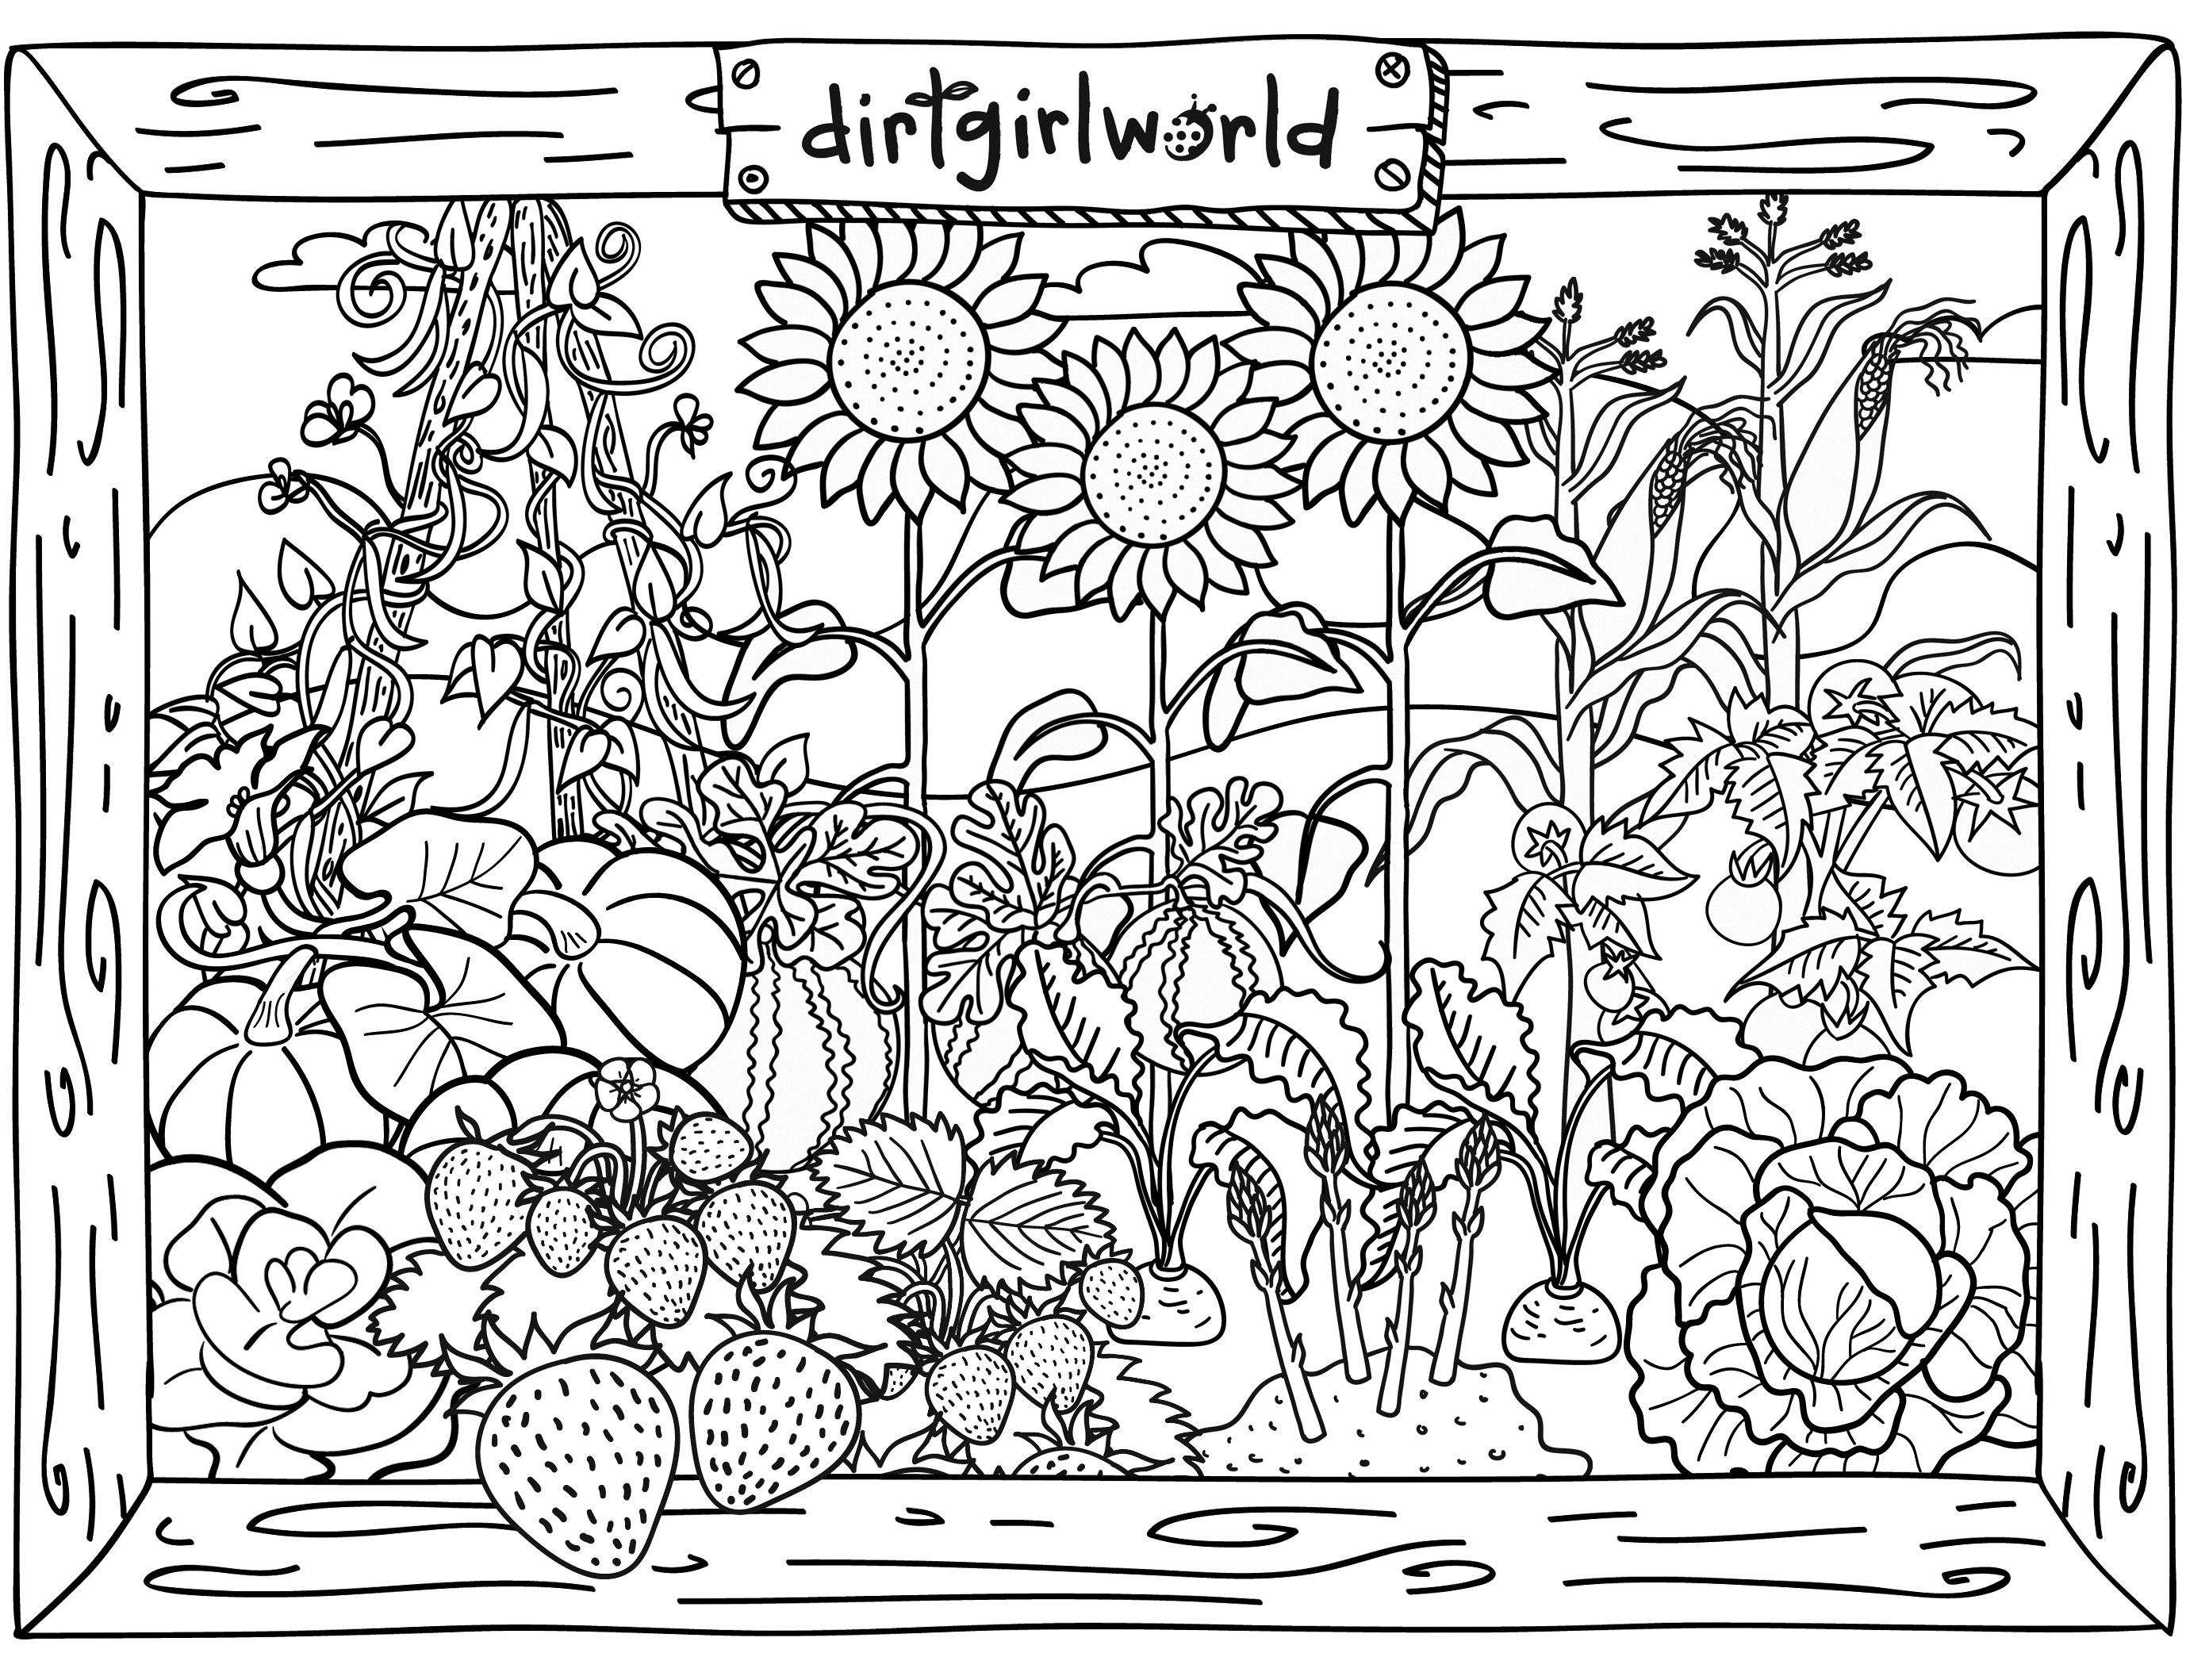 Gardening coloring pages to download and print for free for Garden coloring page